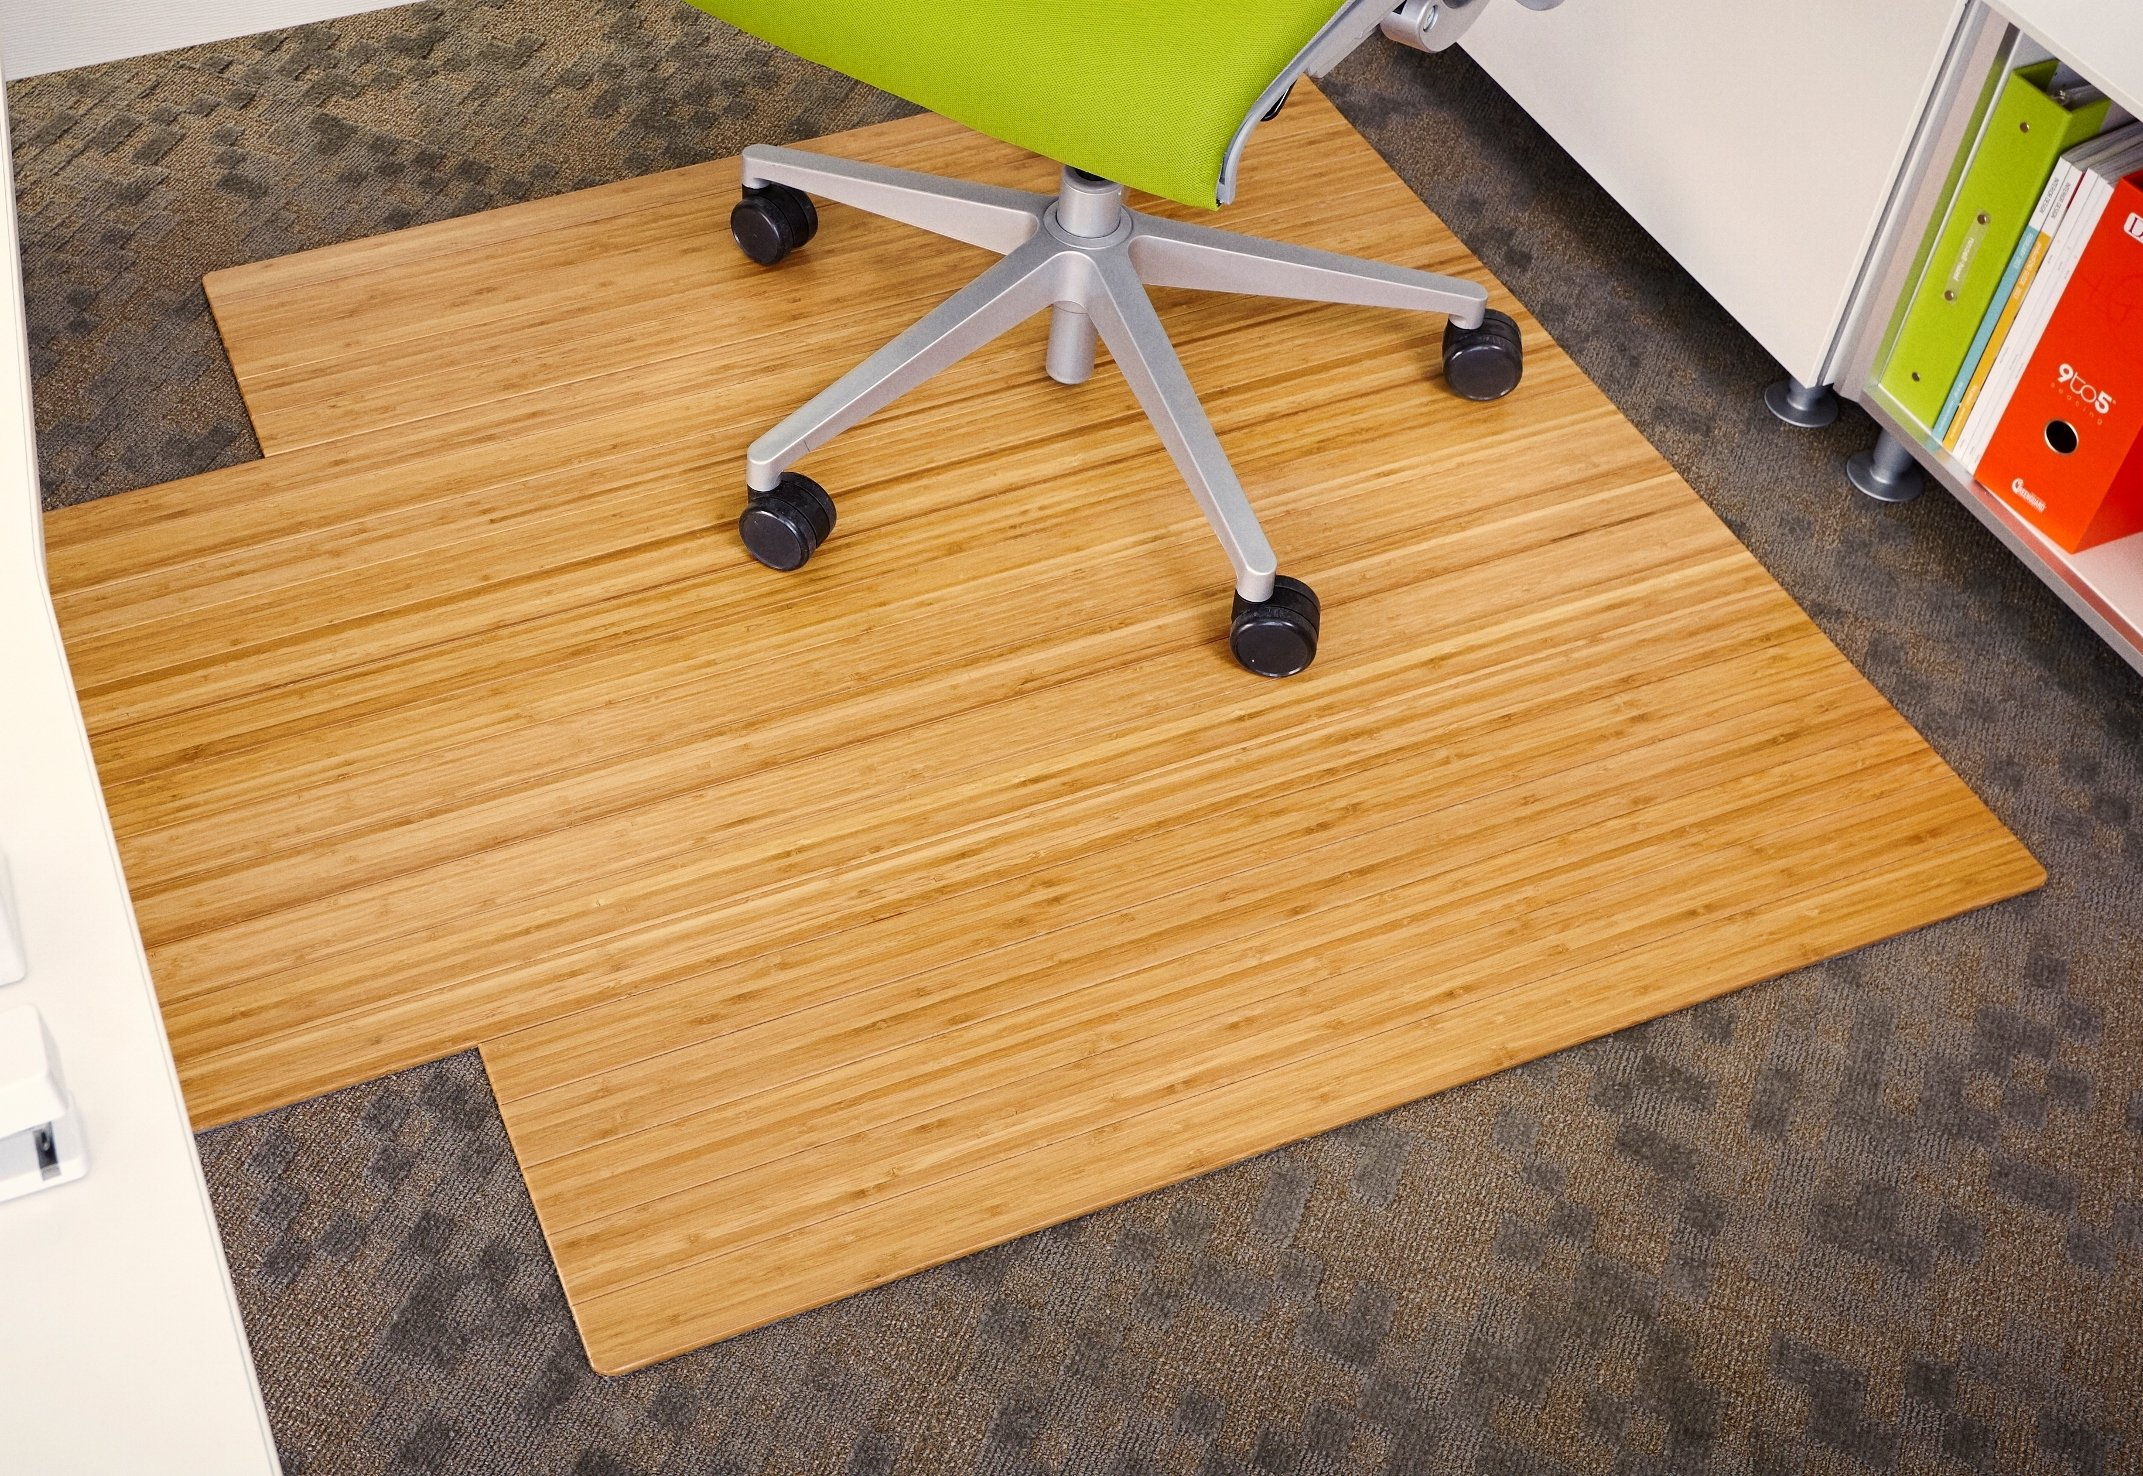 Anji Mountain AMB24005 Bamboo Roll-Up Chair Mat with Lip, Natural, 44 x 52, 5mm Thick